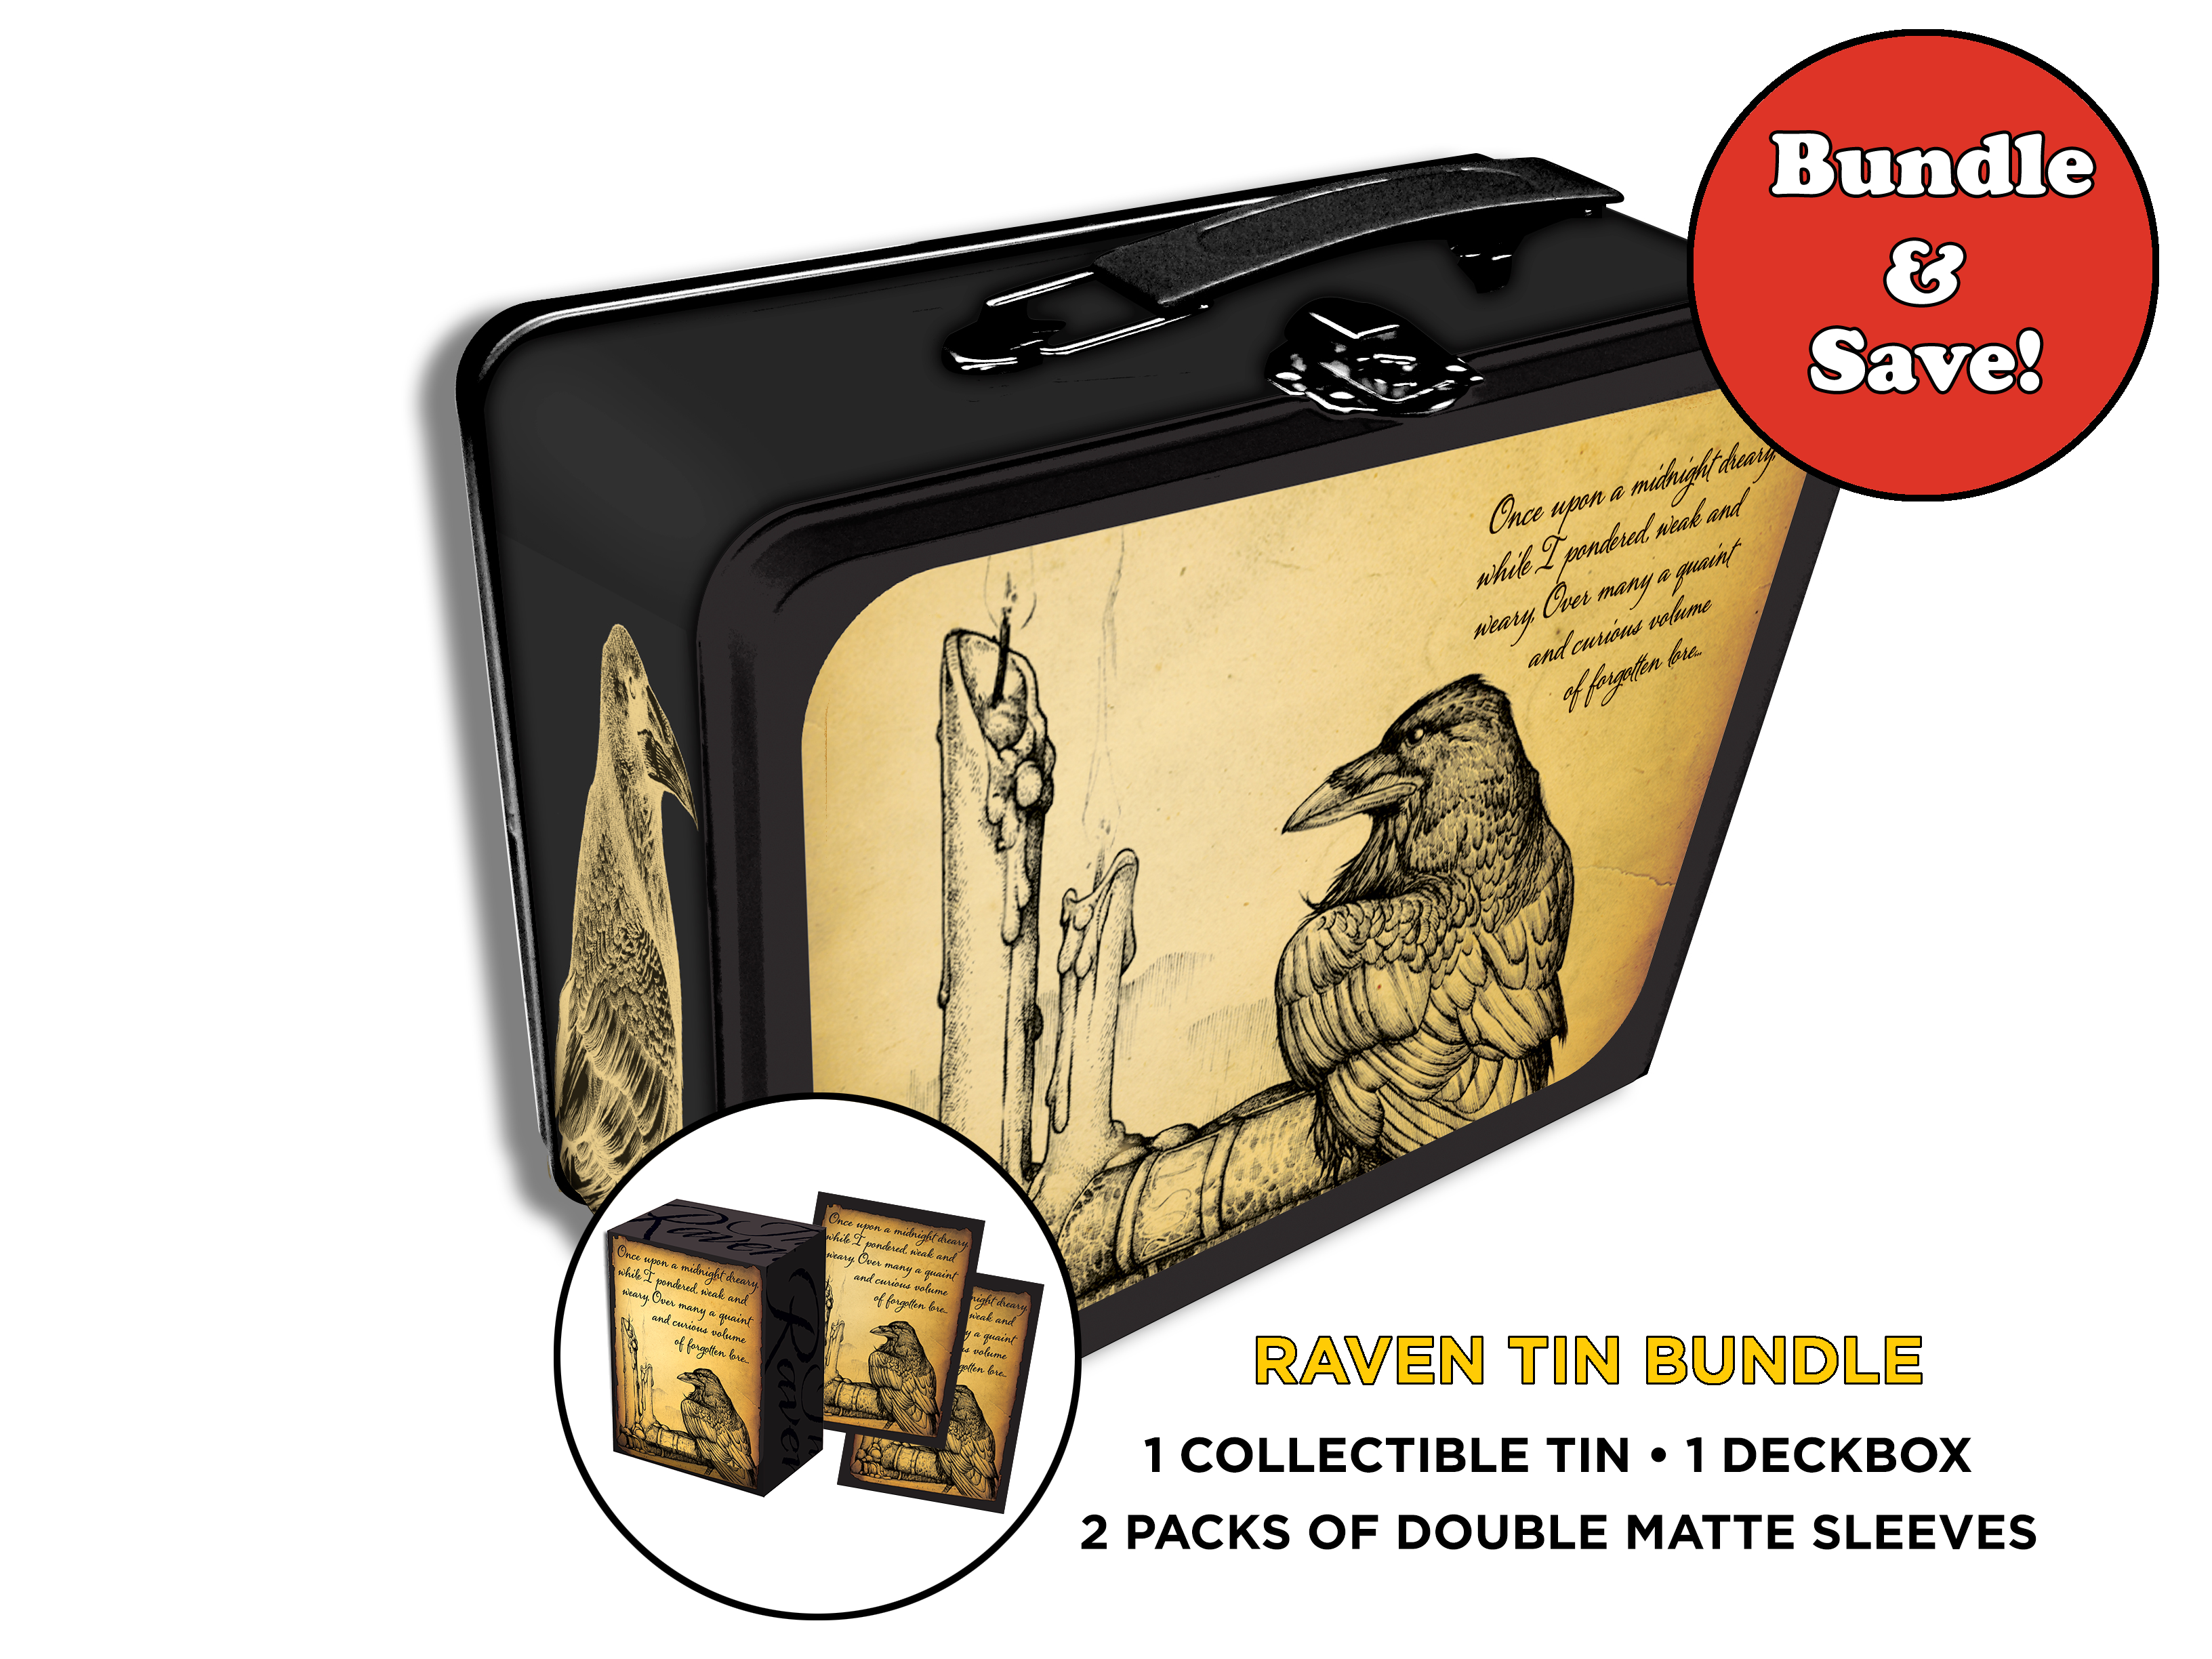 Raven Tin Bundle